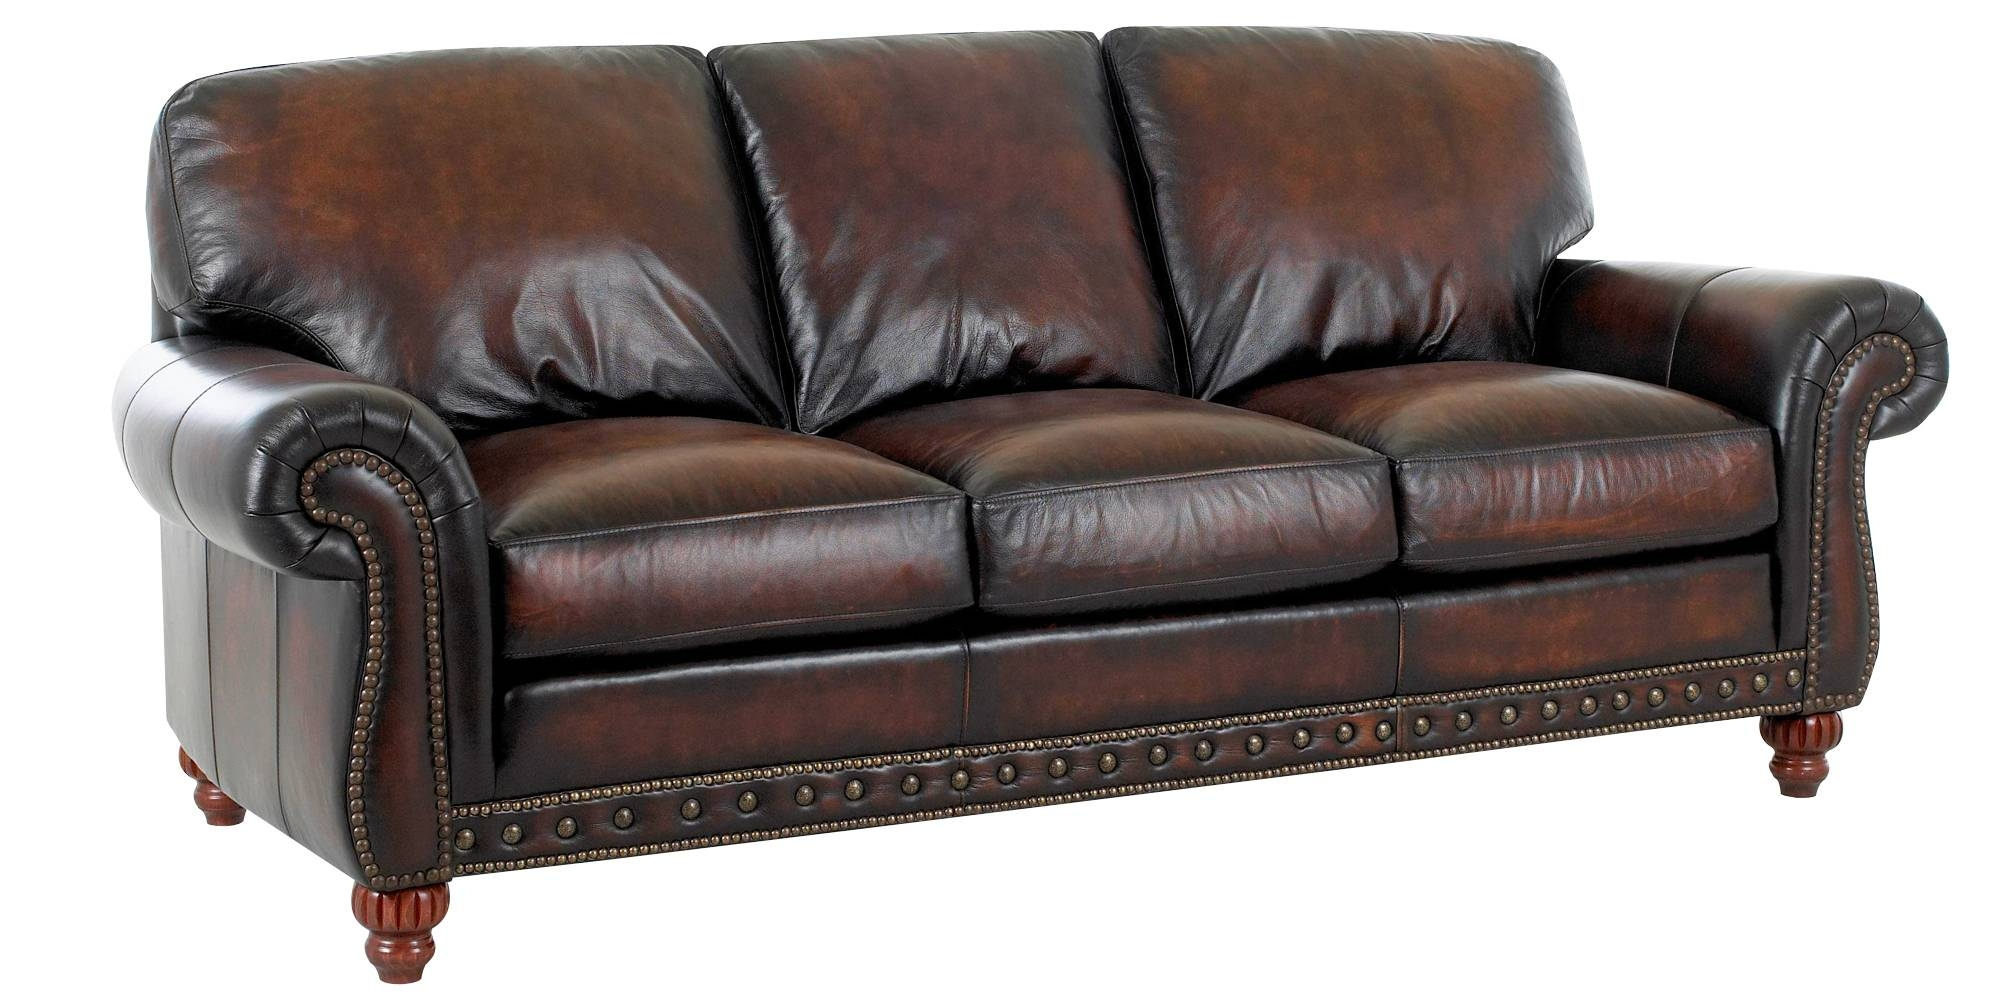 Traditional European Old World Leather Sofa Set | Club Furniture throughout Old Fashioned Sofas (Image 29 of 30)